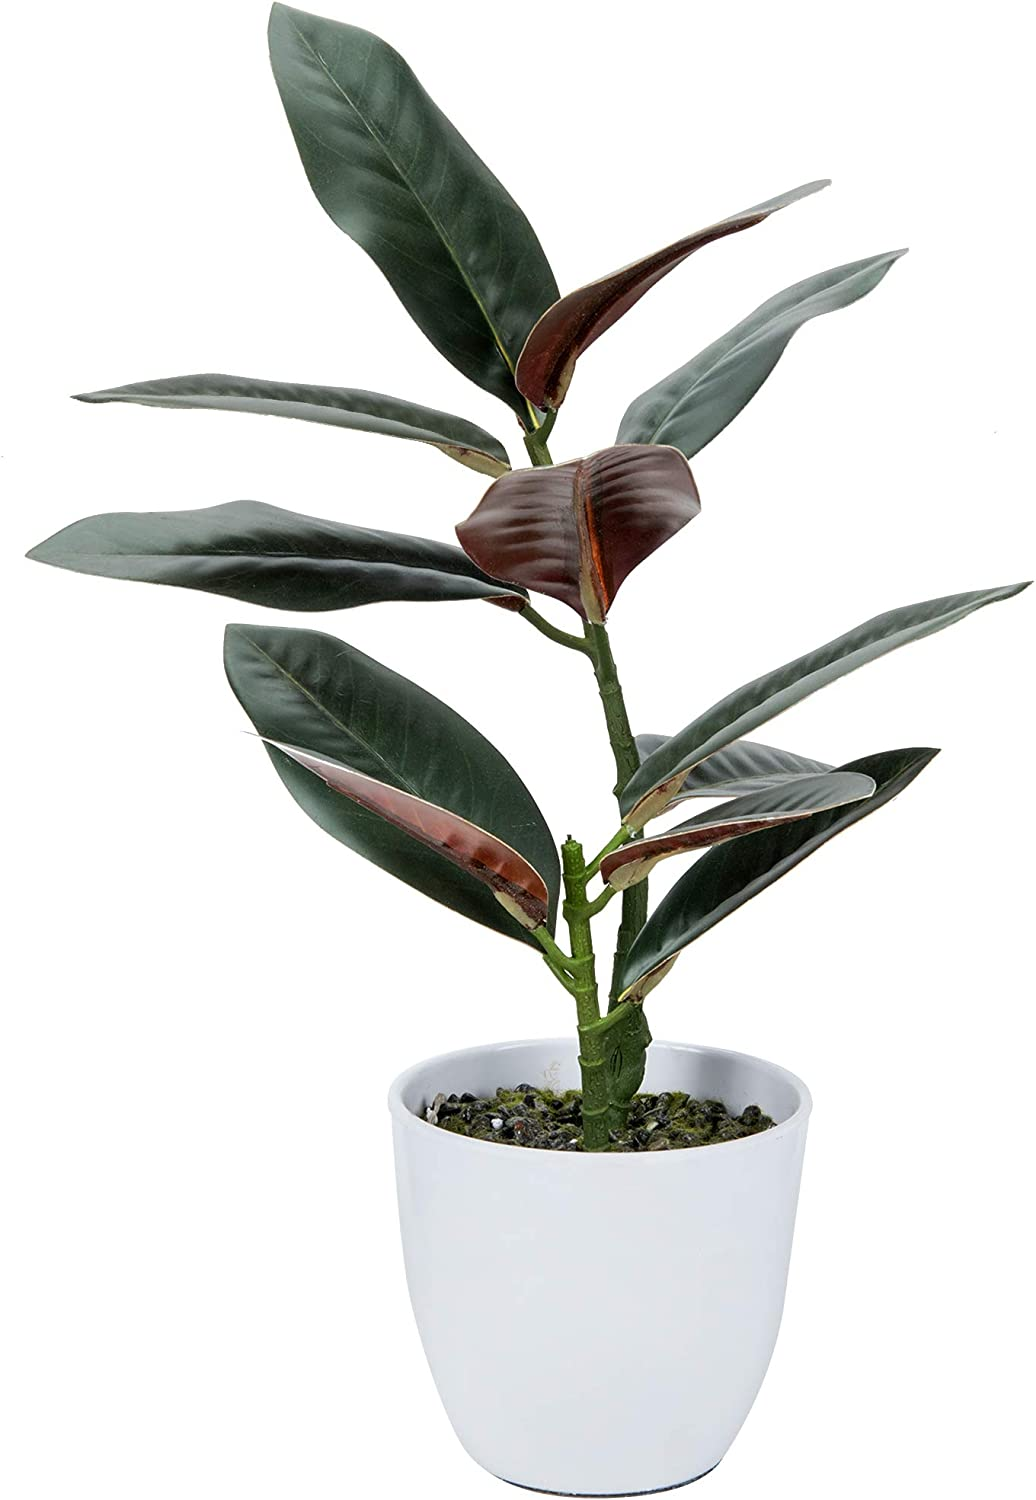 Seedless Natural Artificial Plant for Home Decor - Decorative Green Realistic Fake Plant for Desk - Fake Rubber Fig 19 inches in Pot